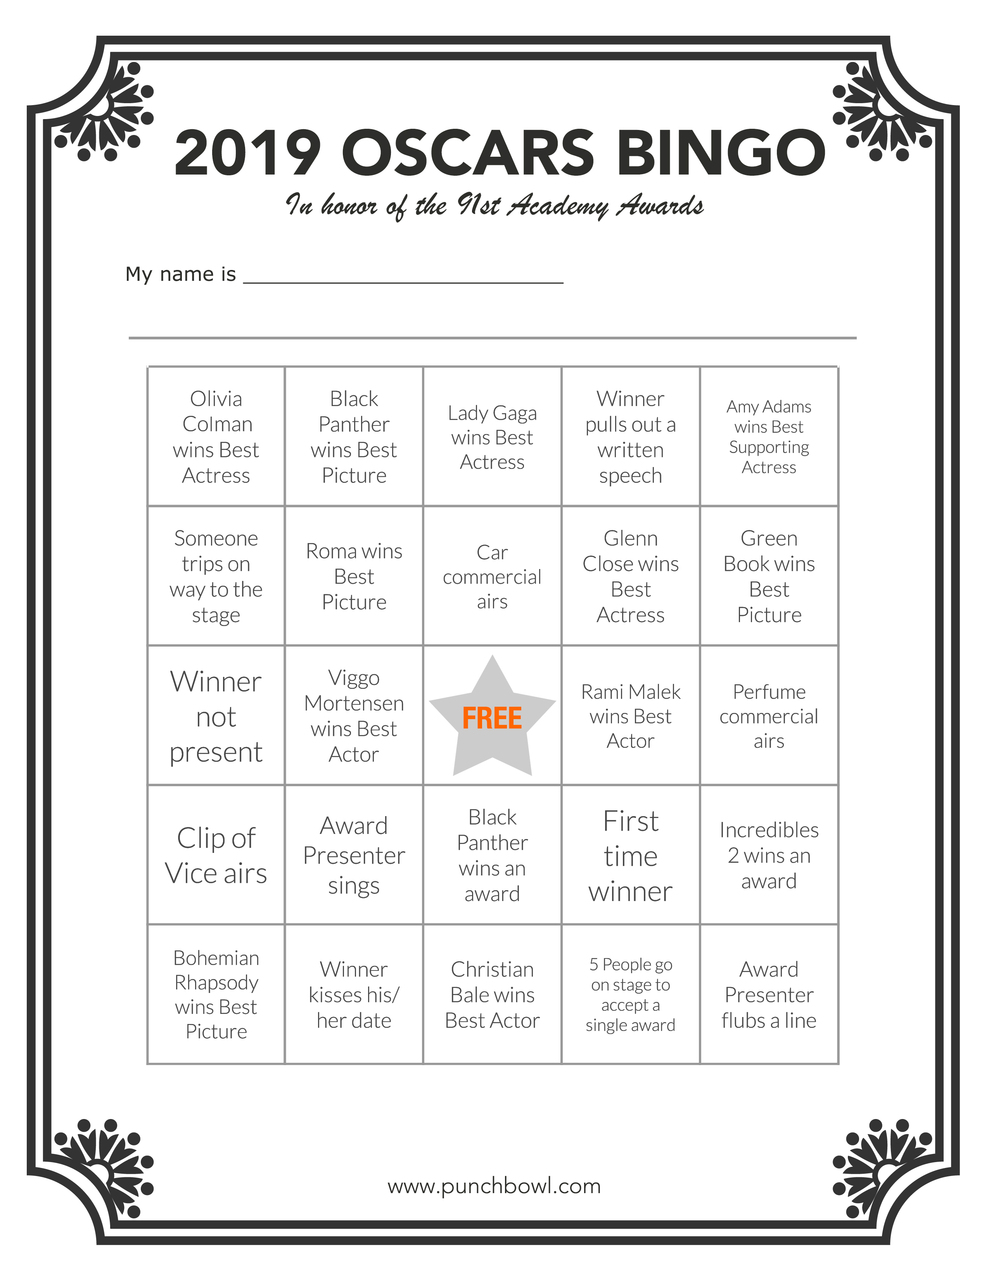 photograph relating to Retirement Party Games Free Printable named Printable Oscars Bingo